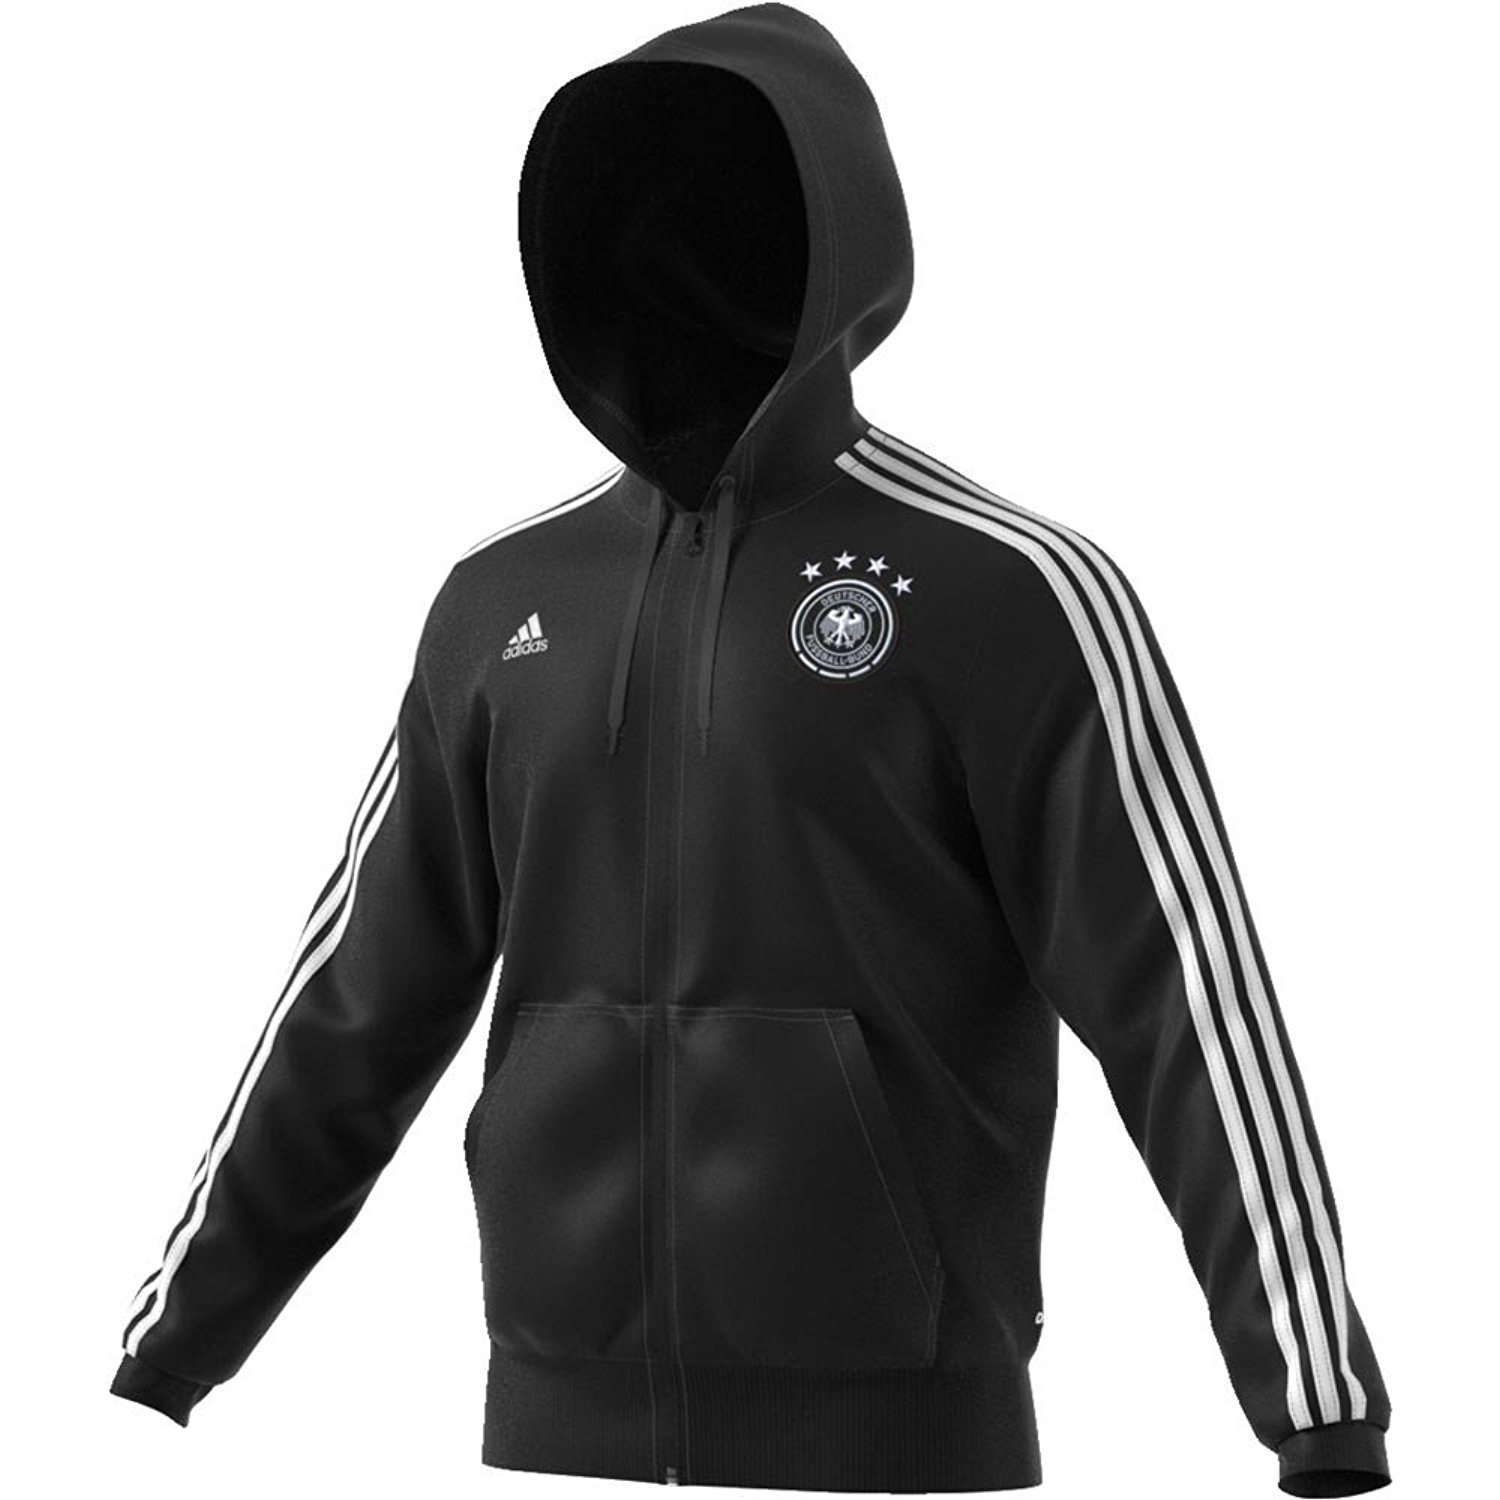 a1f1fdc34 Amazon.com : adidas Mens Germany 3 Stripes Full Zip Hoodie : Sports &  Outdoors